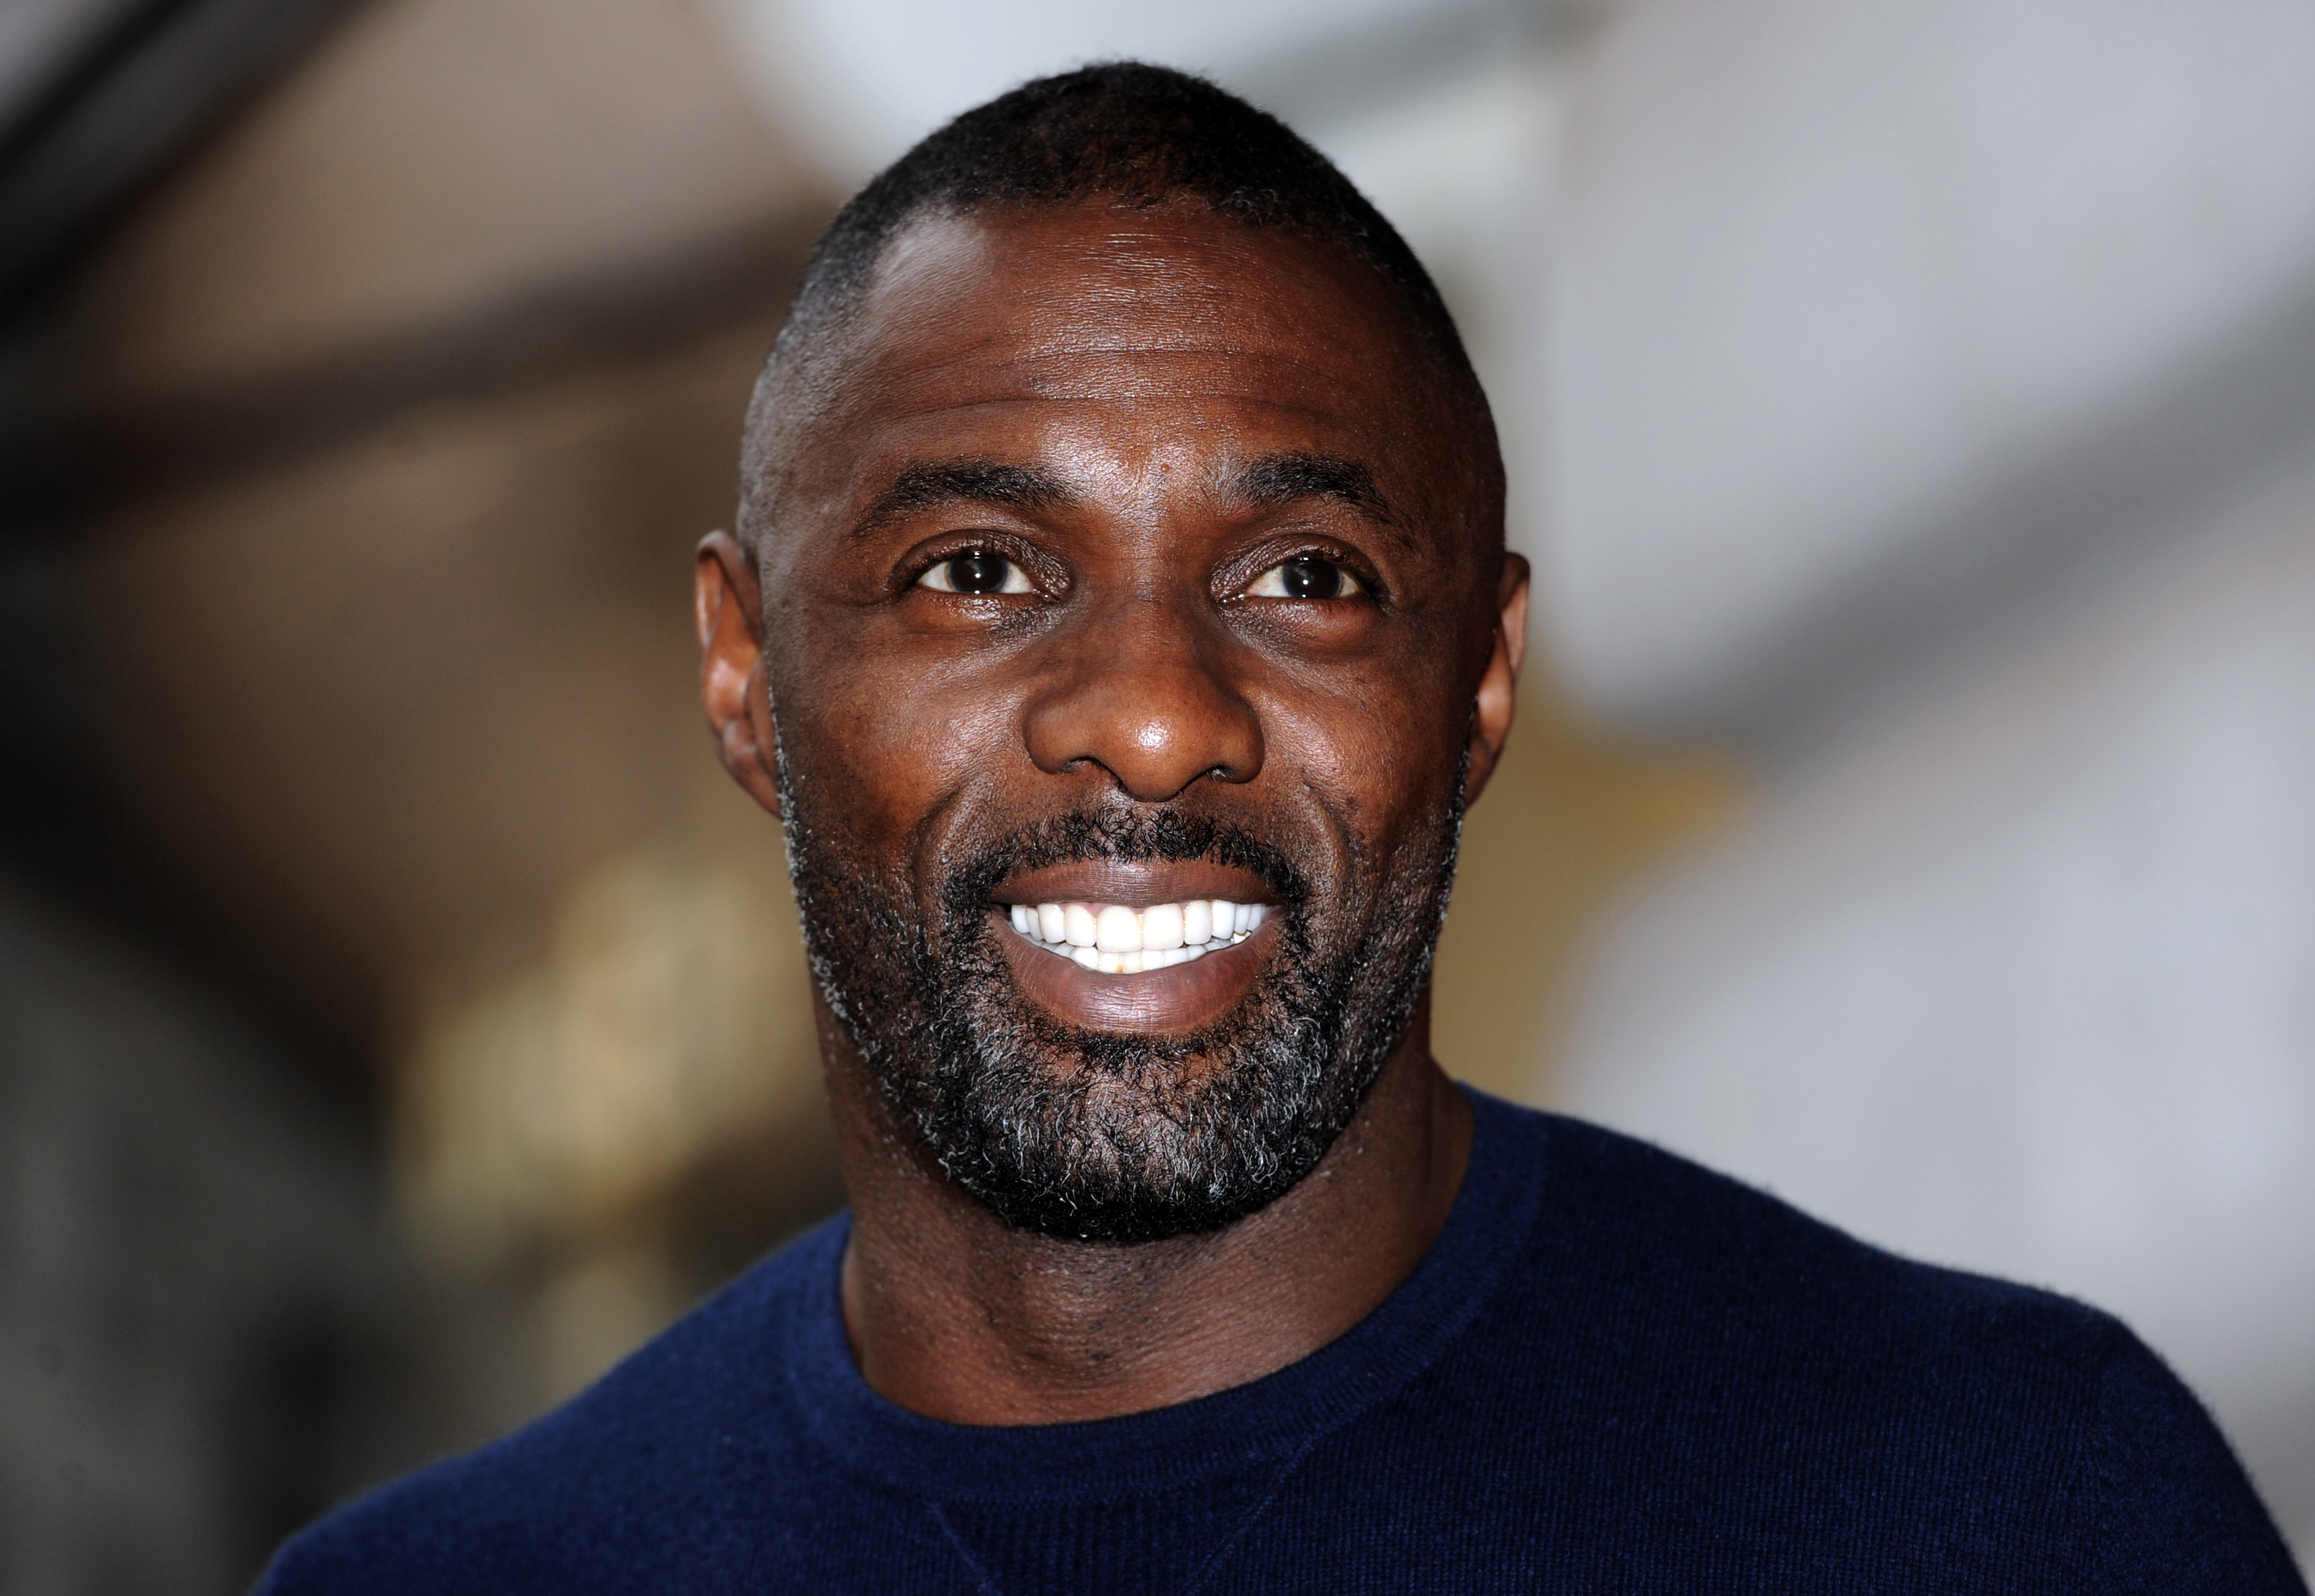 Ut Law School >> Idris Elba's Attorney Ex-Wife Speaks About Her Broken ...